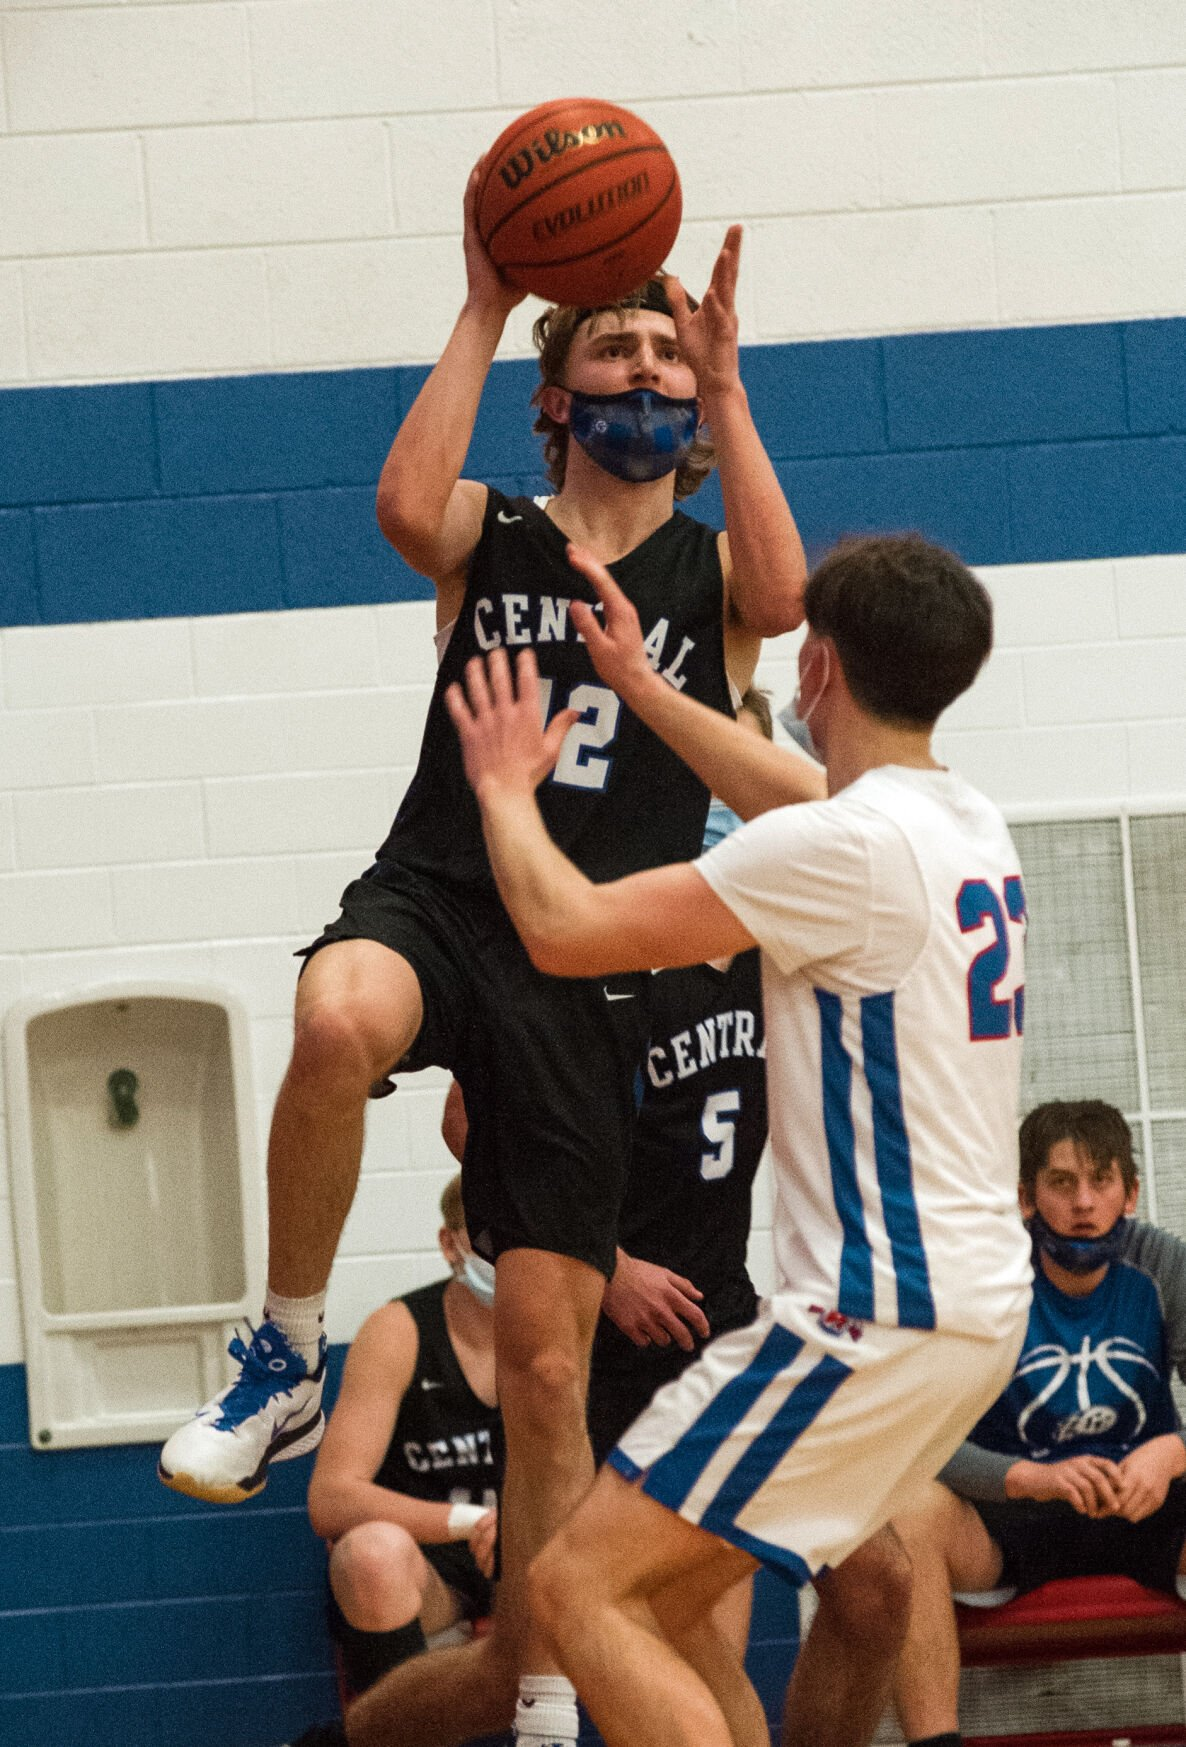 Iroquois West/Central Boys Basketball